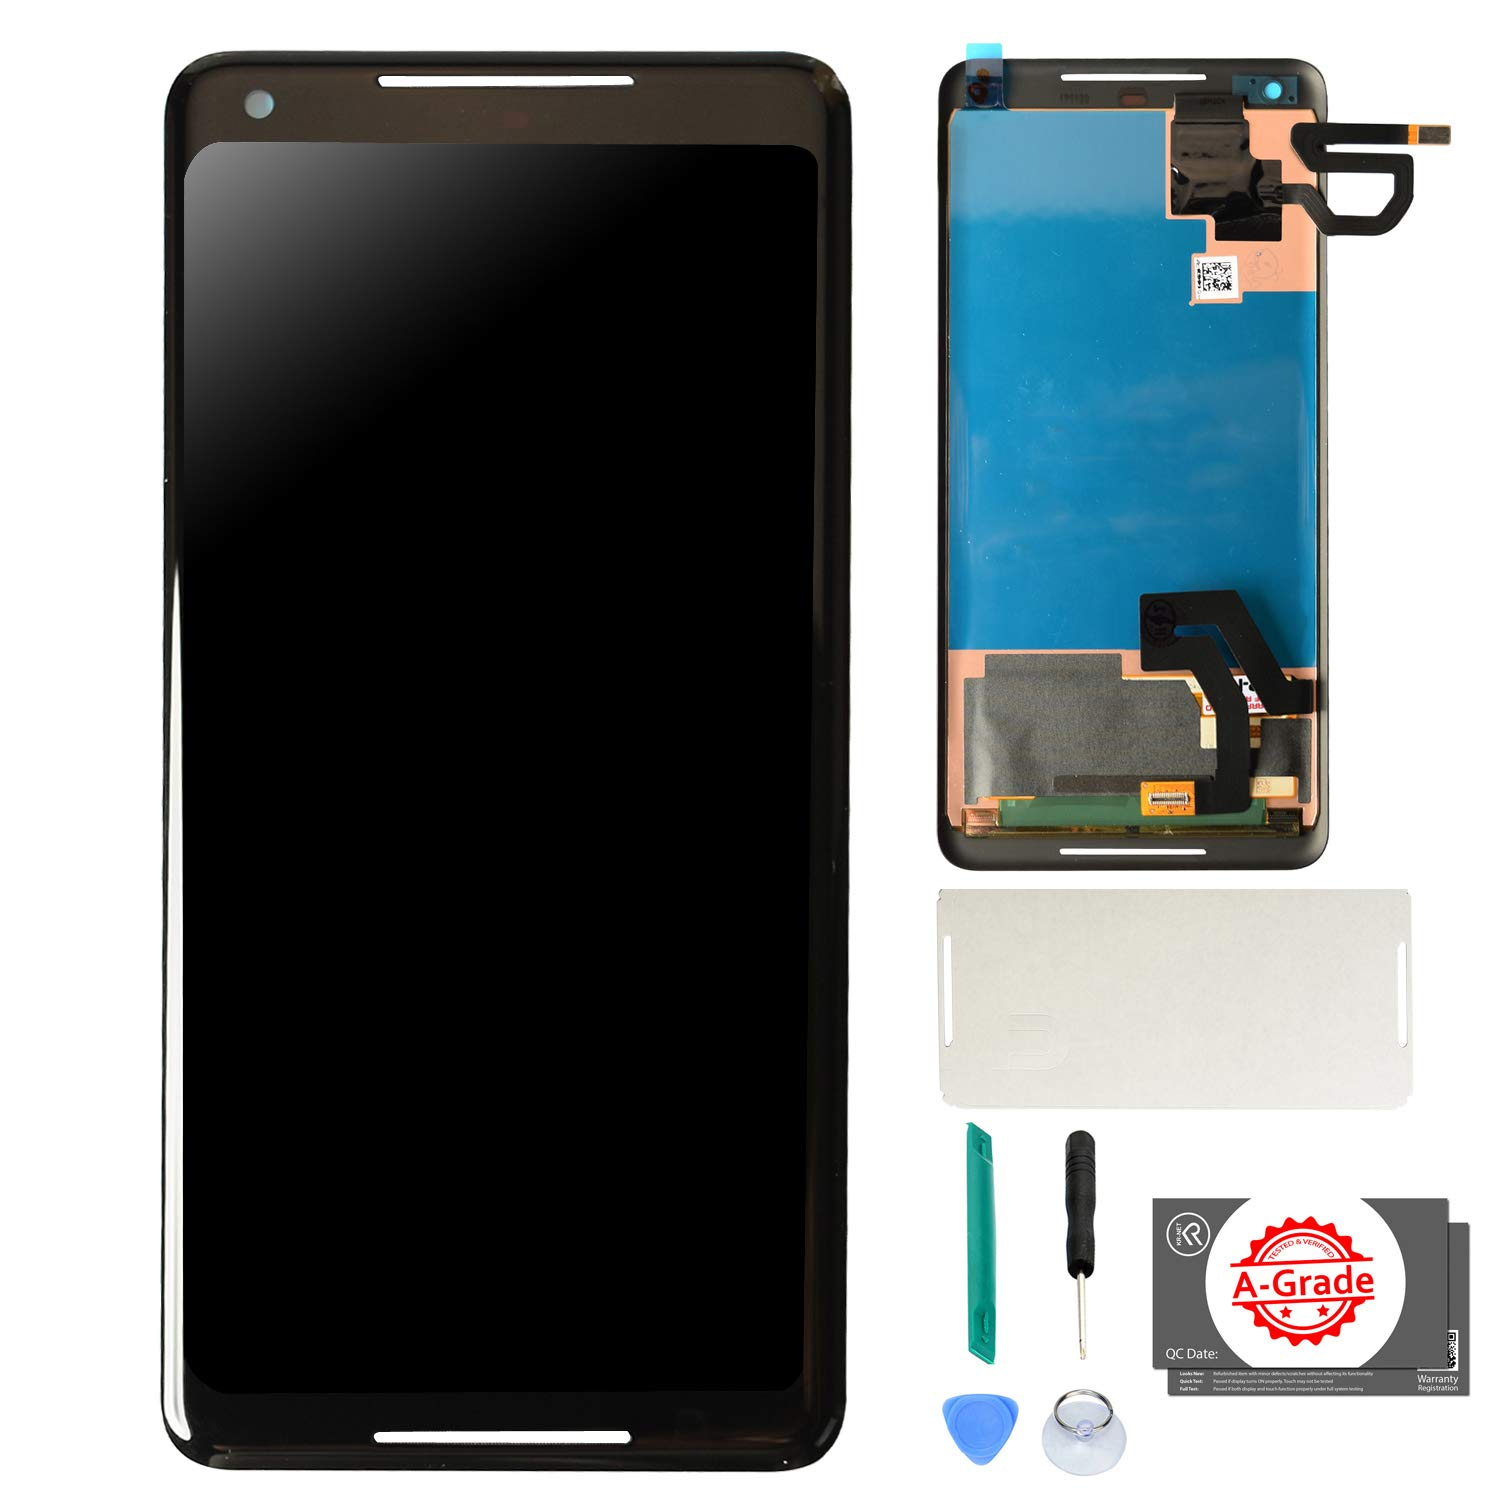 KR-NET OLED LCD Display Touch Screen Digitizer Assembly Replacement for Google Pixel 2 XL, with Adhesive and Tools by KR-NET